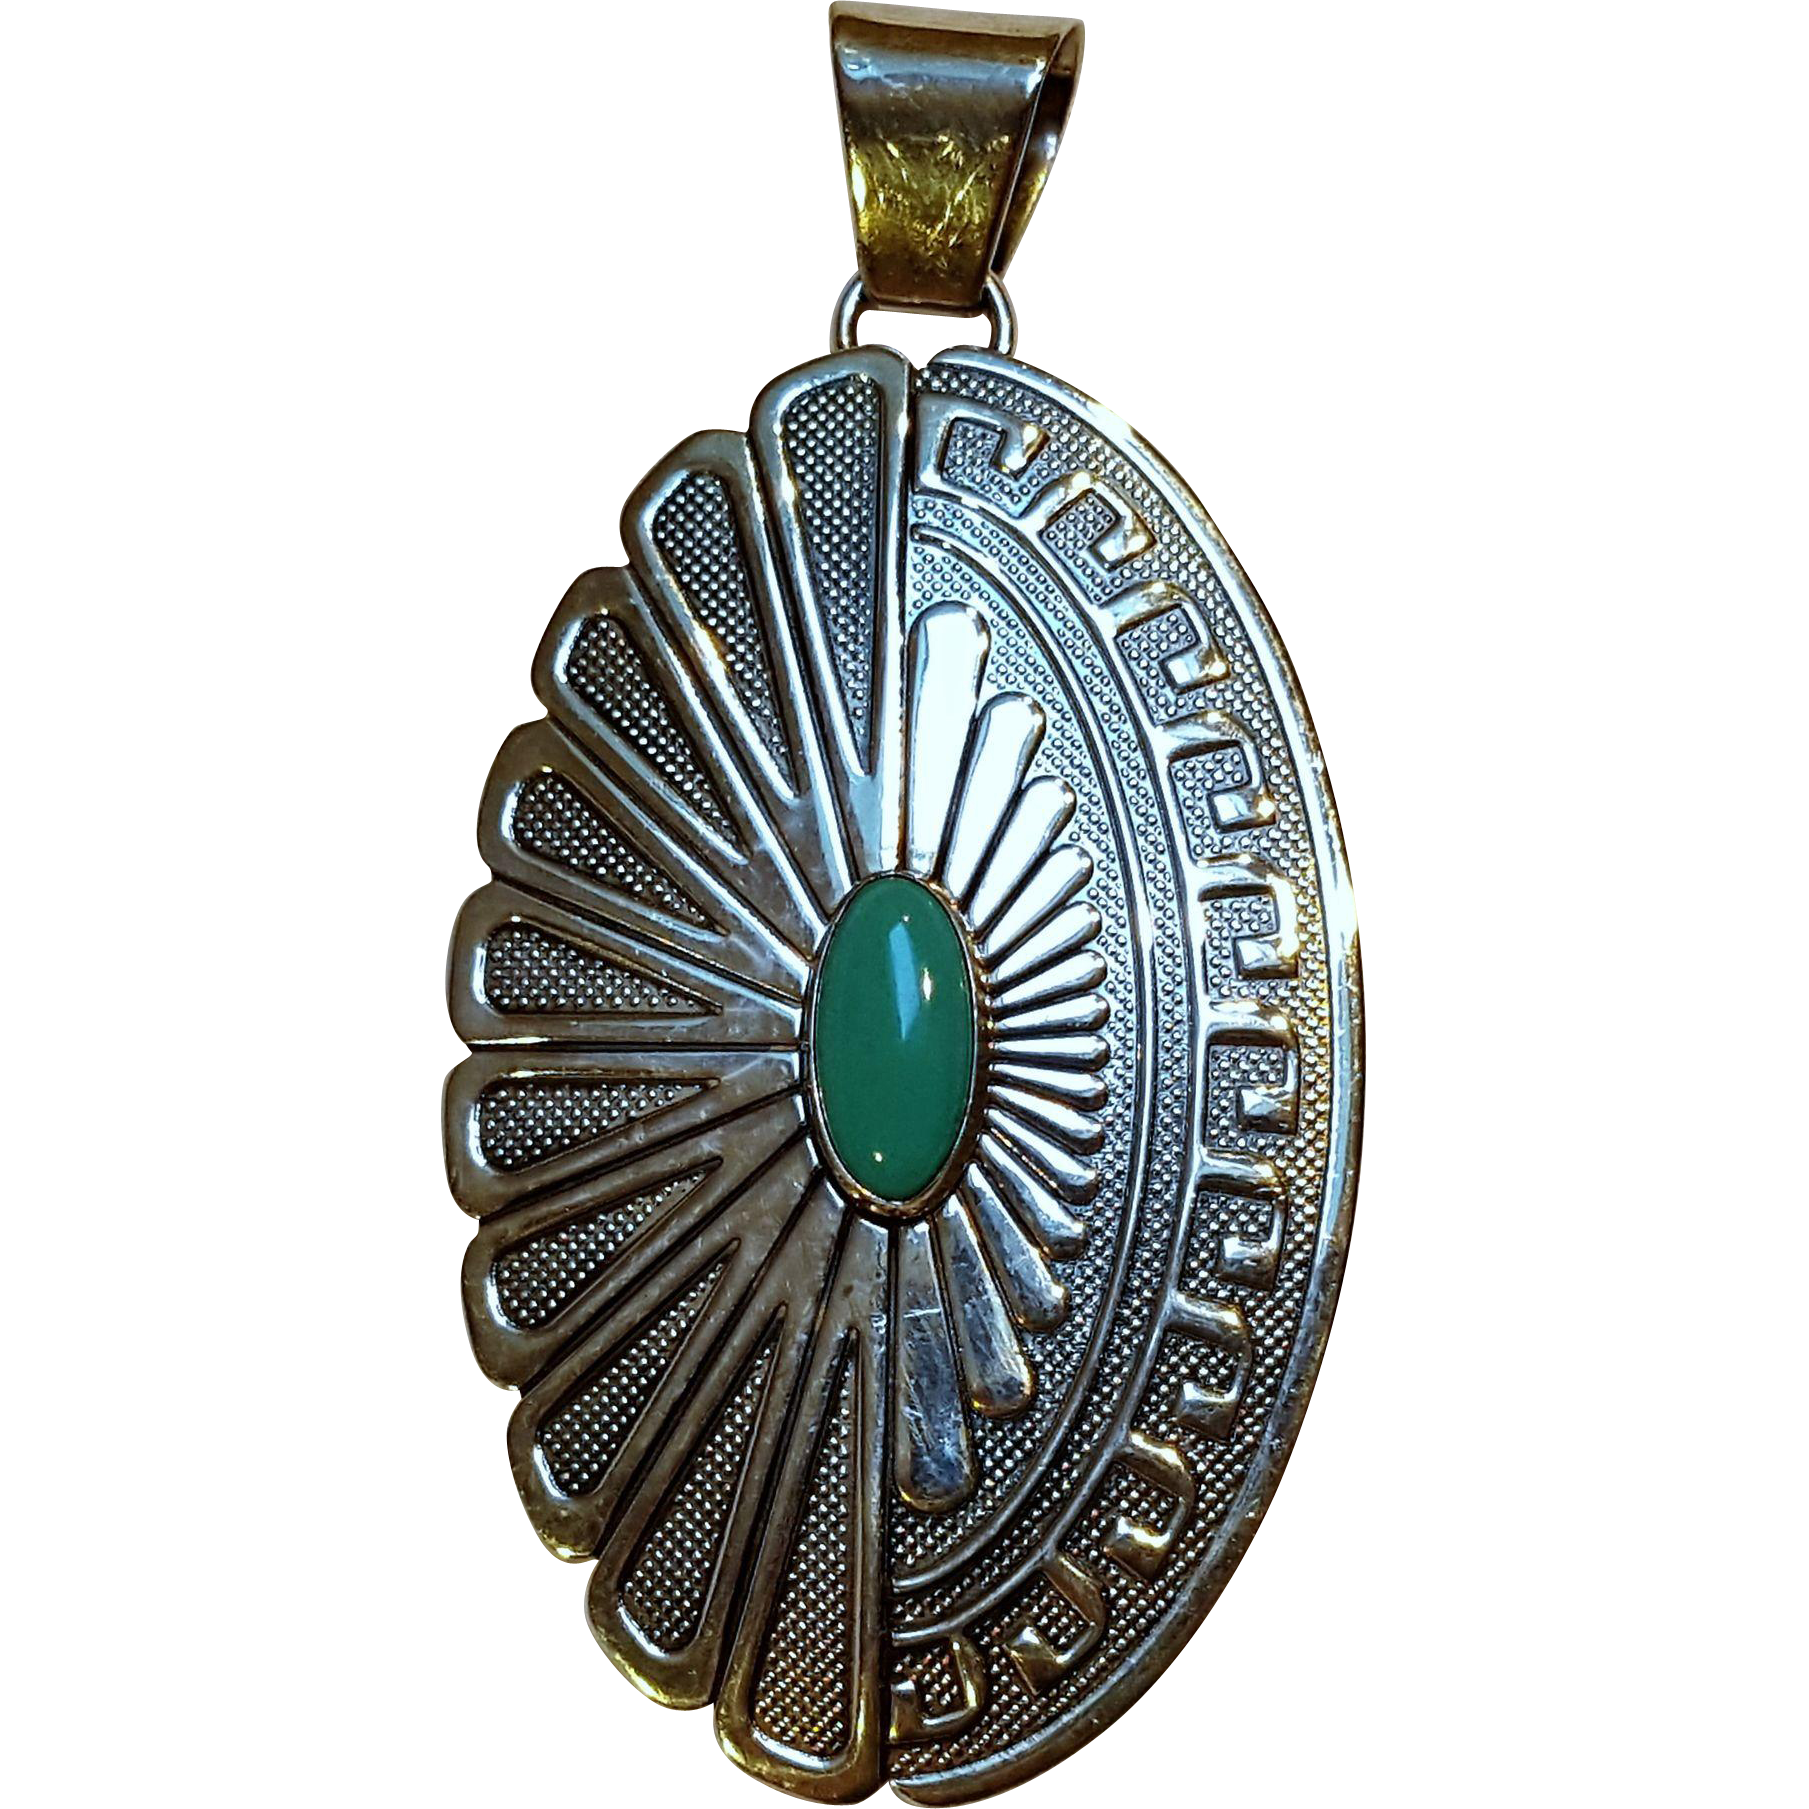 Relios Carolyn Pollack Southwest sterling silver turquoise pendant